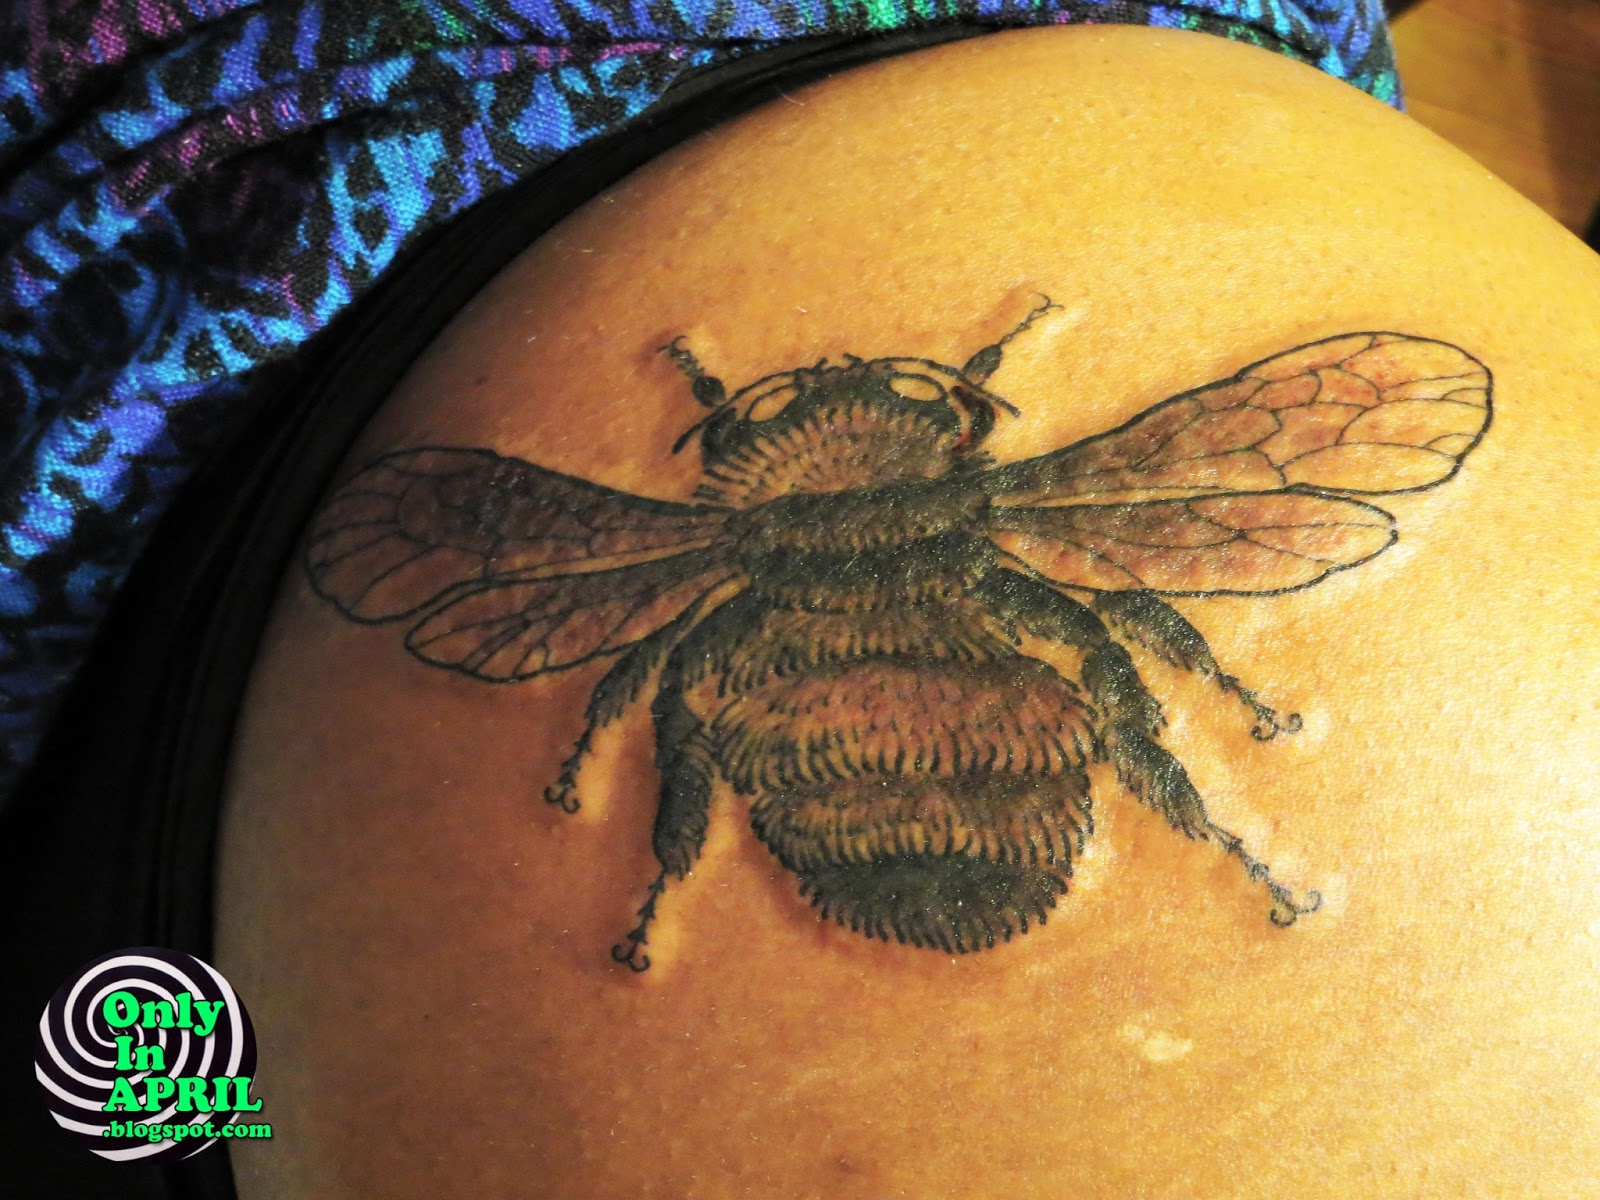 Bee+tattoojpg